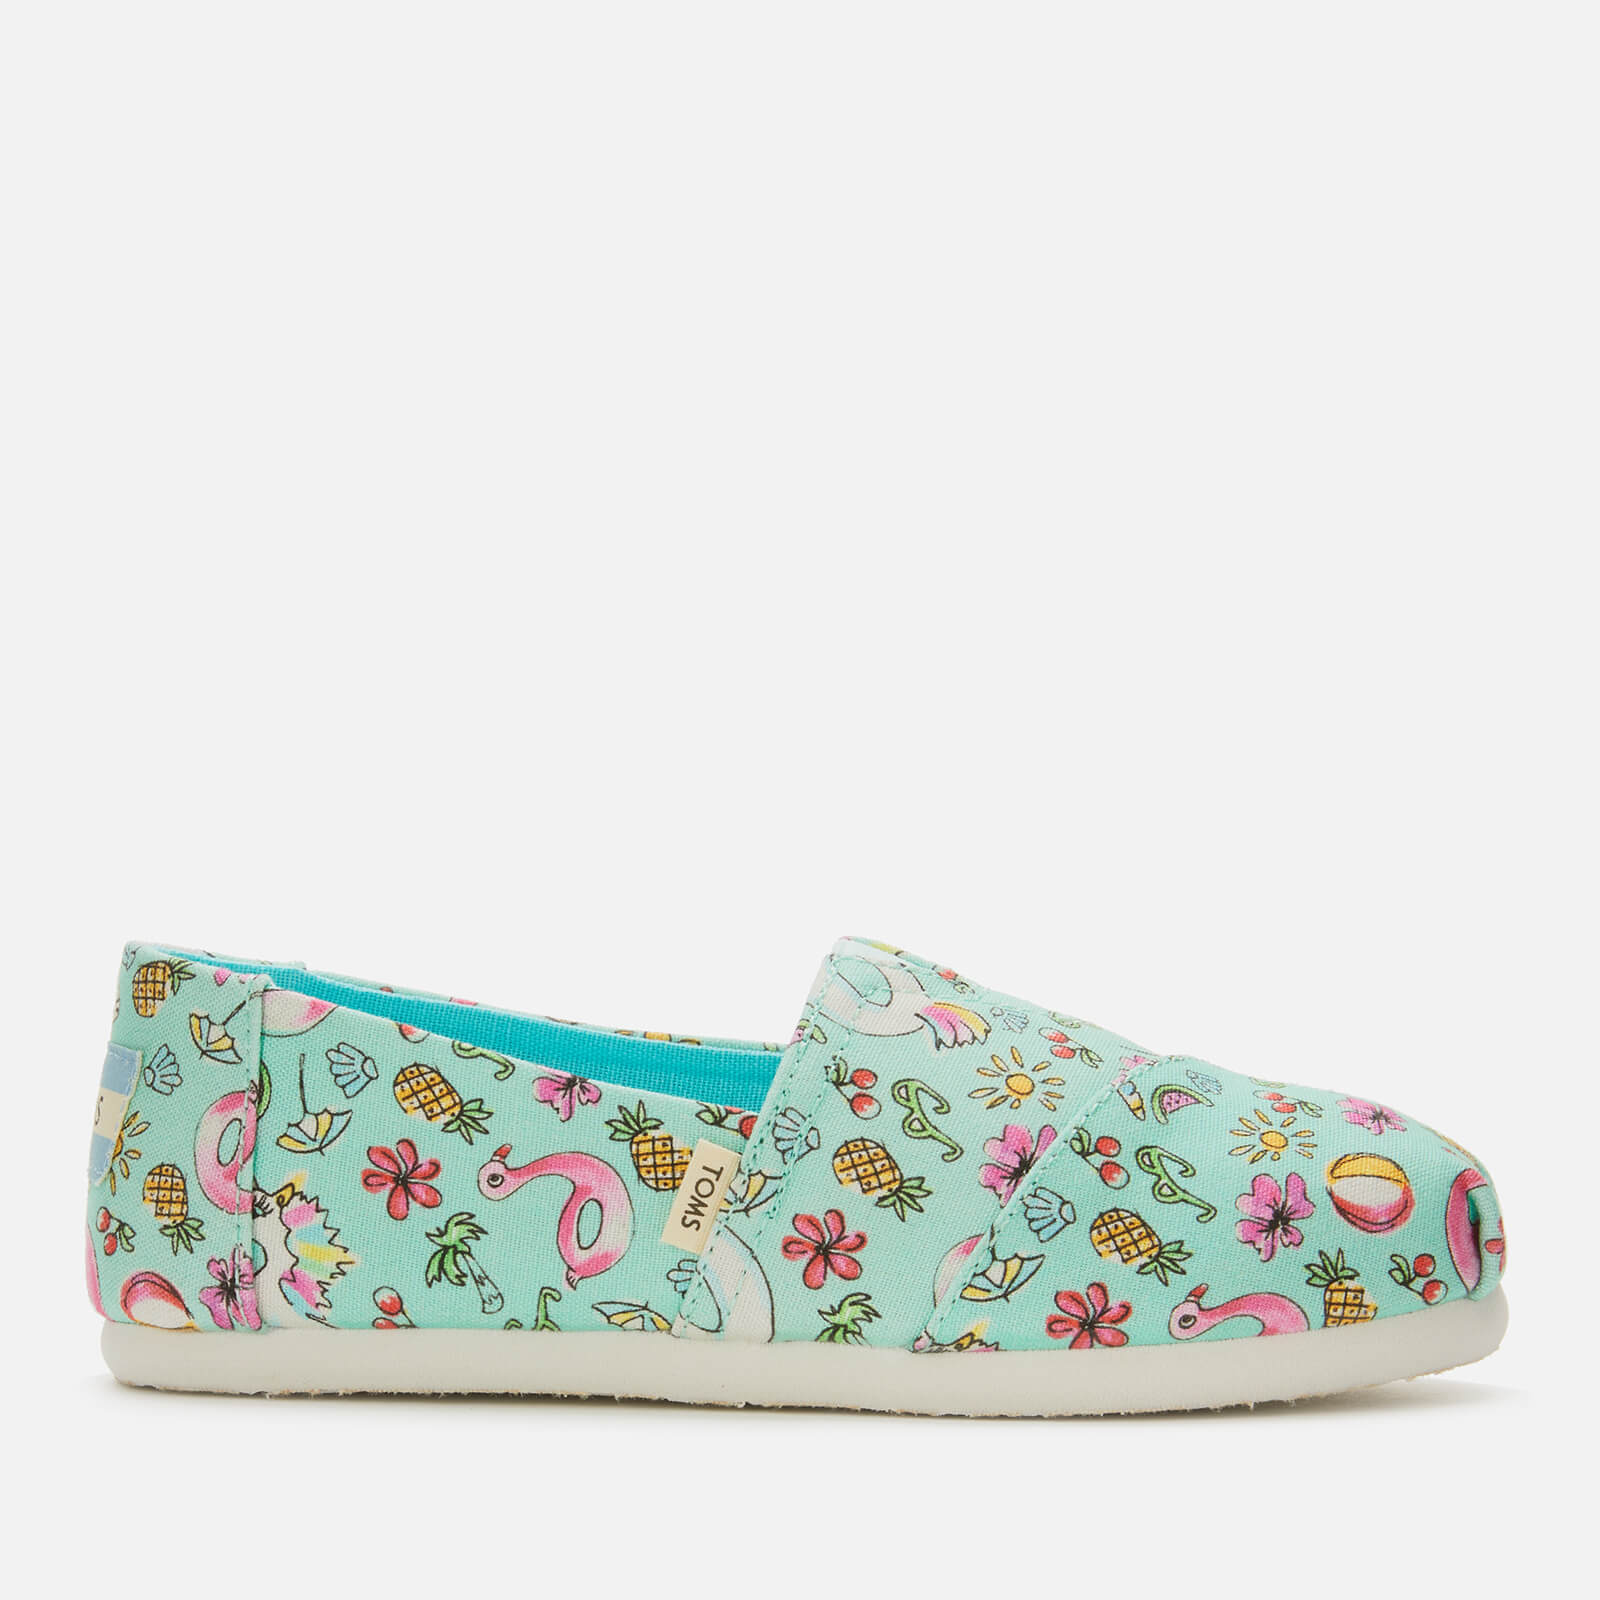 3f8f83701c2 TOMS Kids' Alpargata Vegan Slip-On Pumps - Mint Poolside Junior Clothing |  TheHut.com